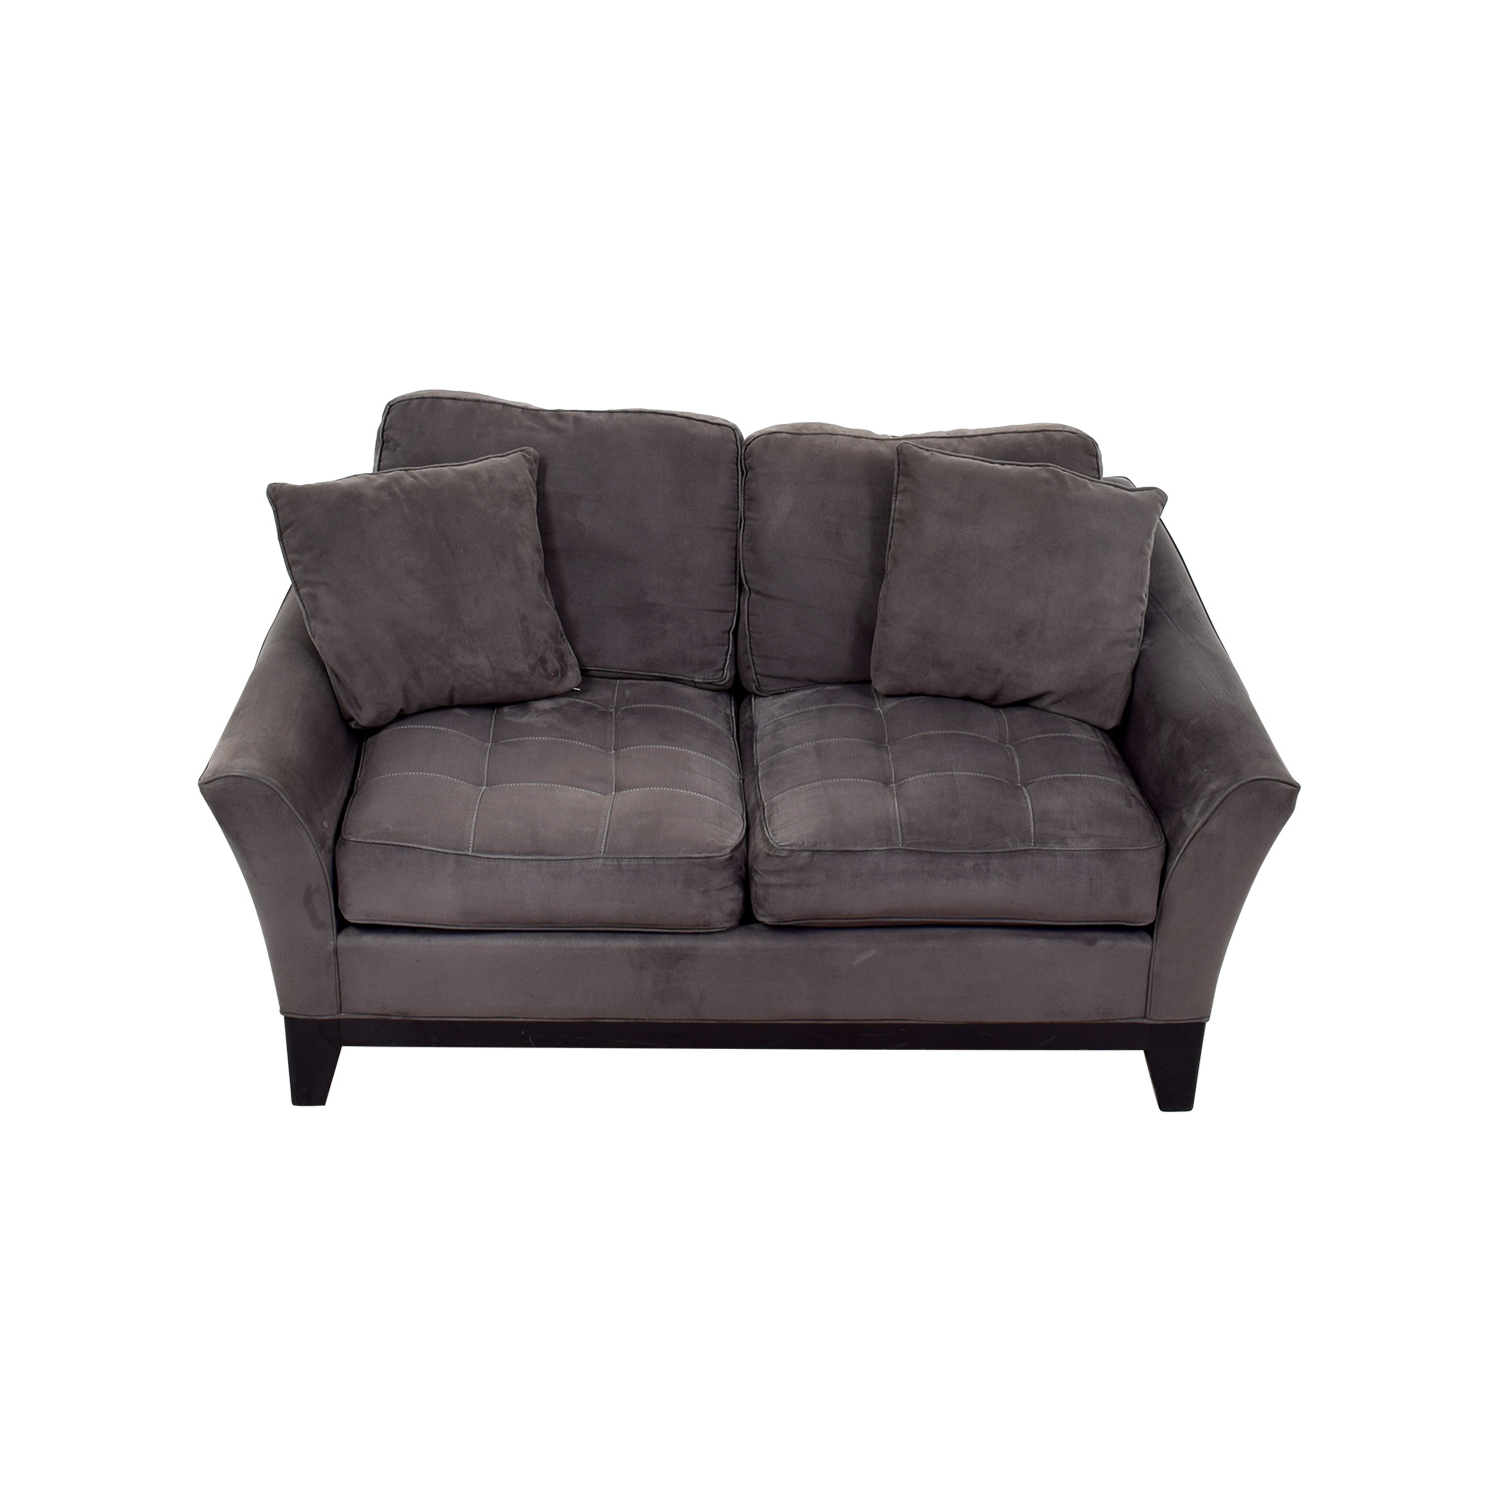 [%75% Off – Raymour & Flanigan Raymour & Flanigan Rory Slate With Regard To 2018 Rory Sofa Chairs|Rory Sofa Chairs Intended For Most Recent 75% Off – Raymour & Flanigan Raymour & Flanigan Rory Slate|Recent Rory Sofa Chairs With 75% Off – Raymour & Flanigan Raymour & Flanigan Rory Slate|Most Recent 75% Off – Raymour & Flanigan Raymour & Flanigan Rory Slate Inside Rory Sofa Chairs%] (View 3 of 20)